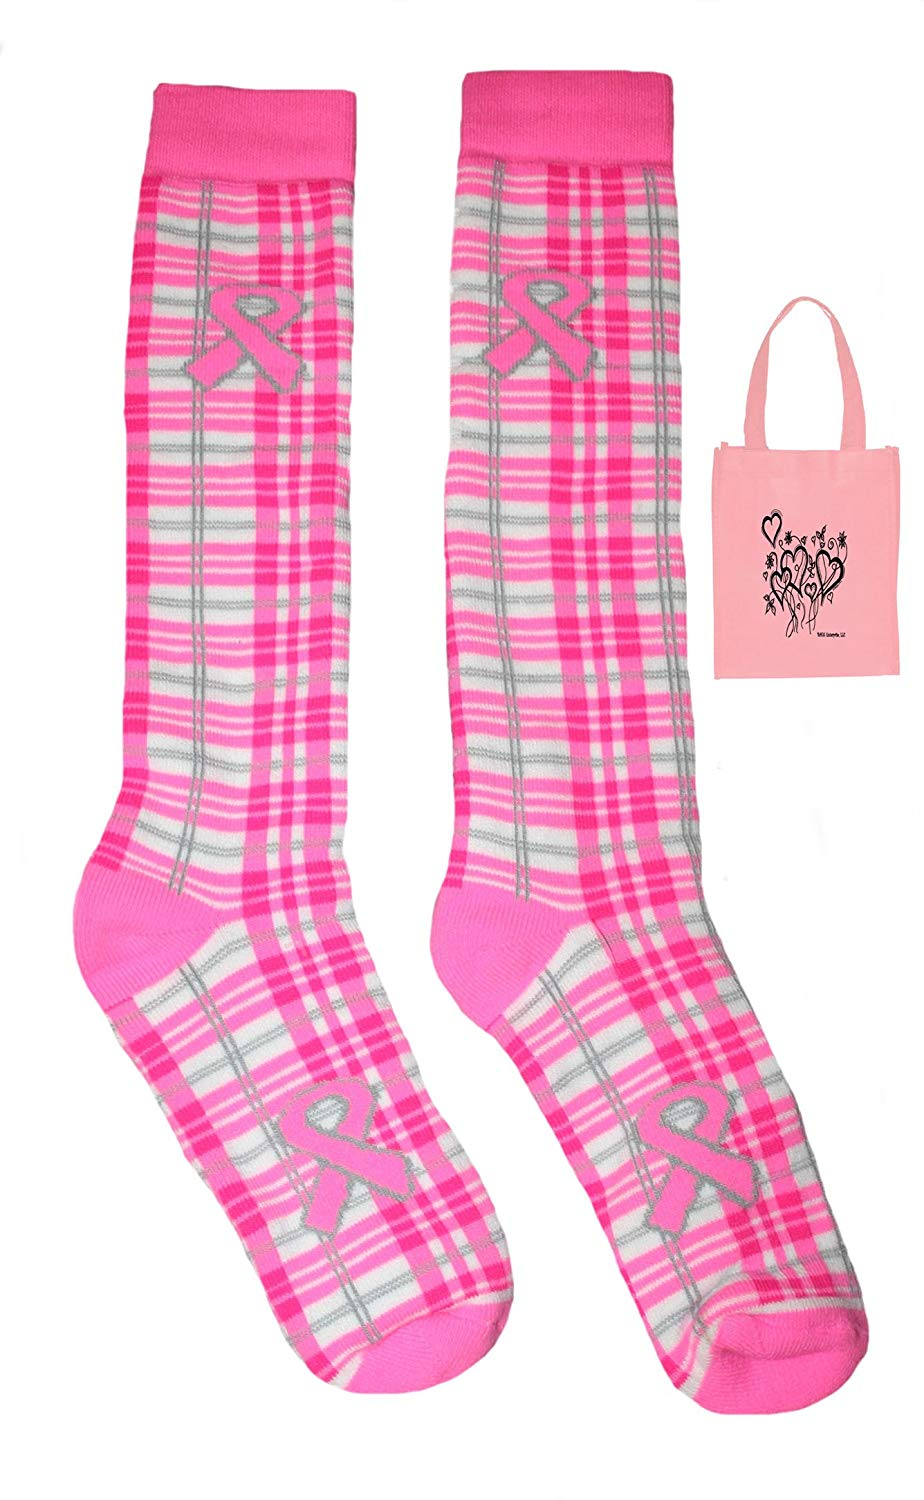 d7daf129fac4b Cheap Breast Cancer Awareness Soccer Socks, find Breast Cancer ...